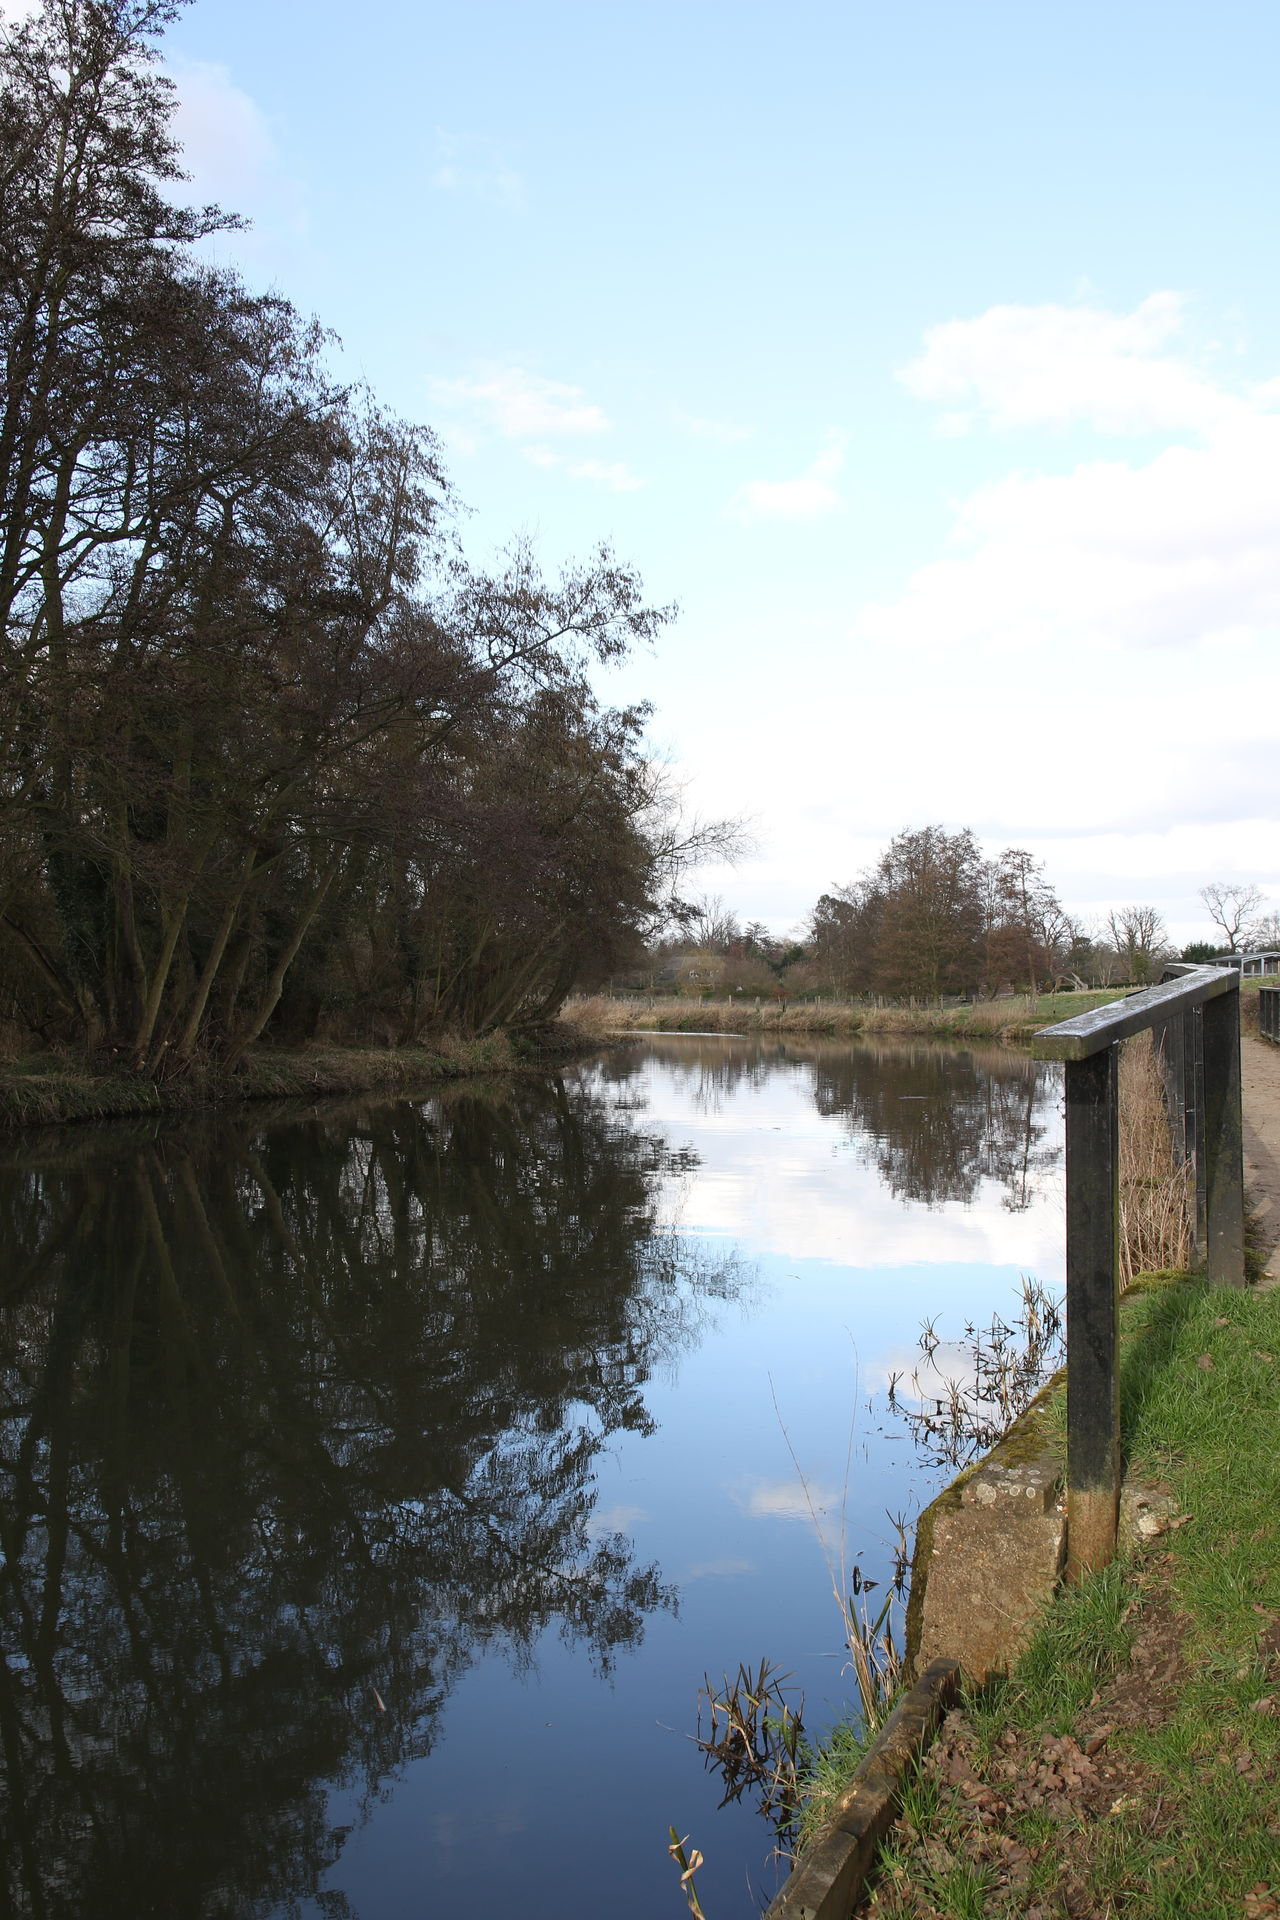 Beauty In Nature Bridge Day Growth Nature No People Outdoors Railing Reflection River River Wey Scenics Sky Sky And Clouds Surrey Countryside Tranquil Scene Tranquility Tree Water